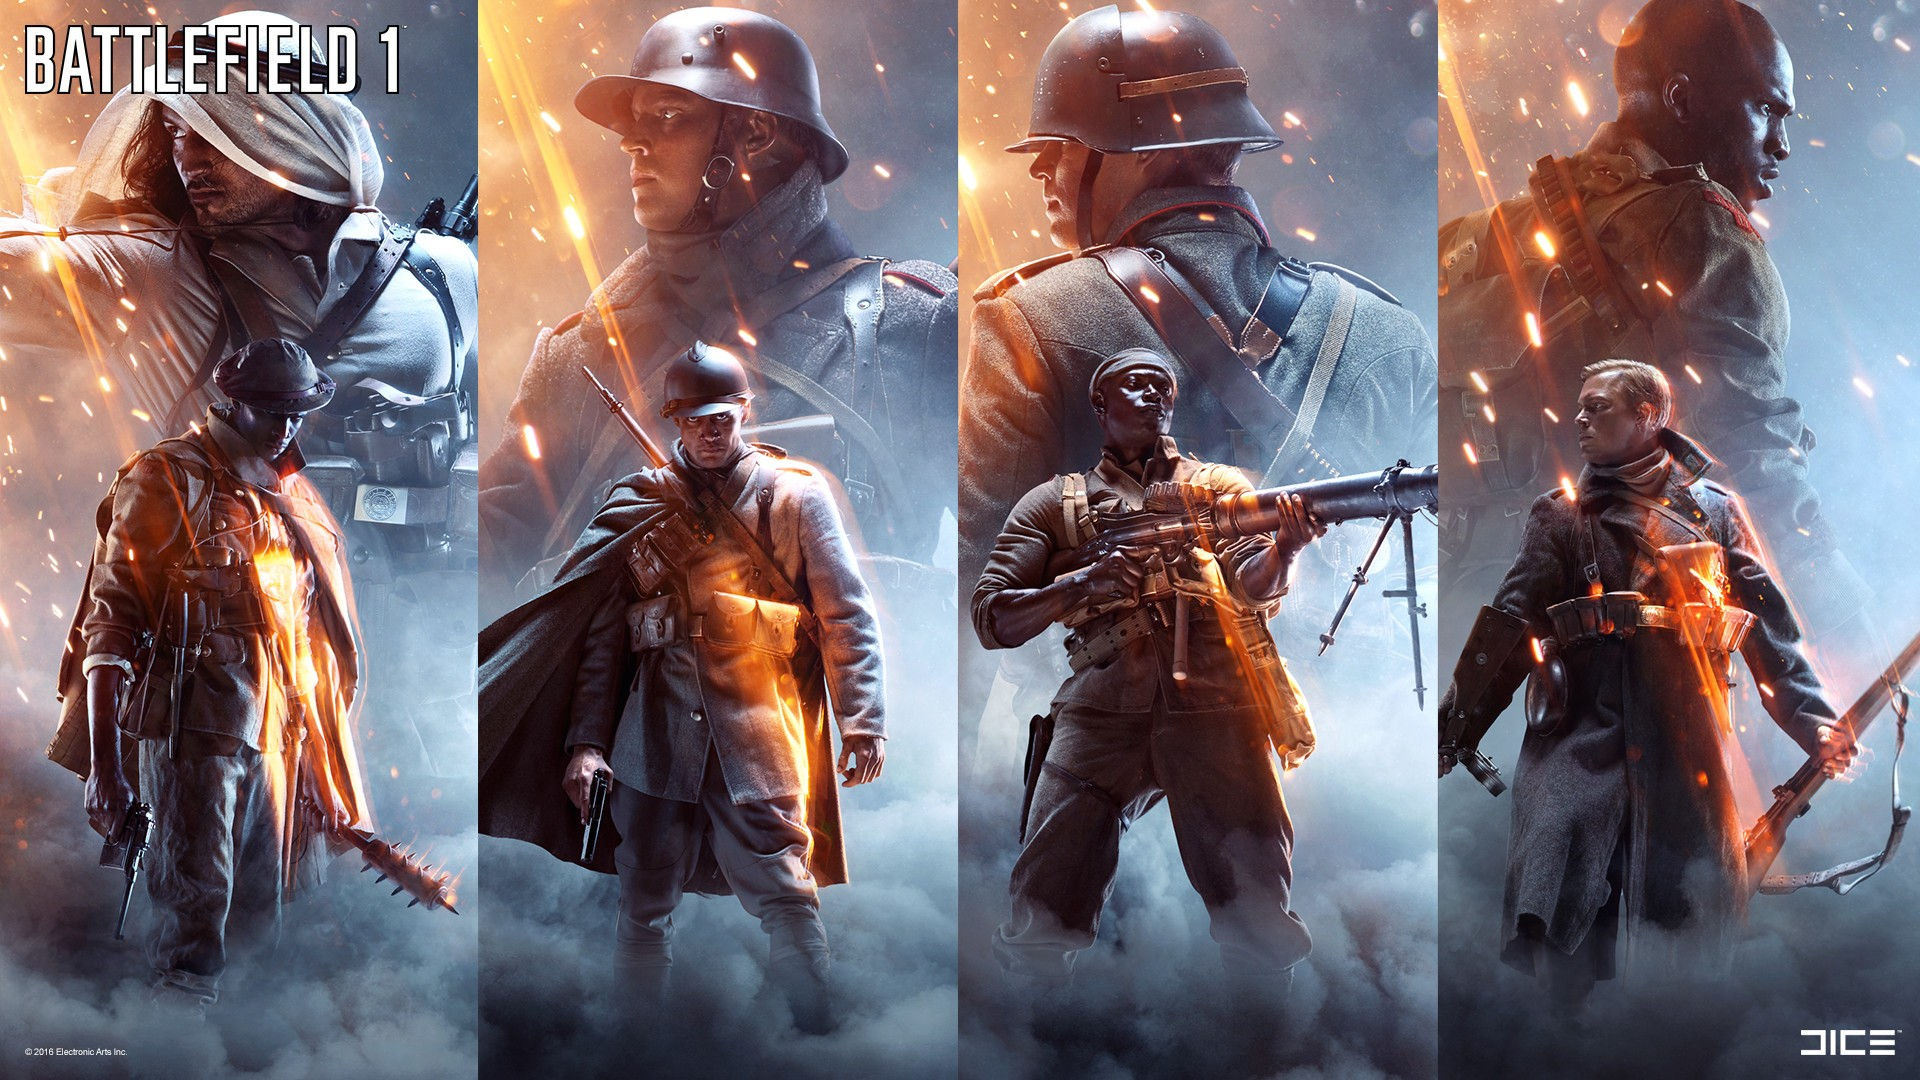 Battlefield 1 HD Wallpapers, Pictures